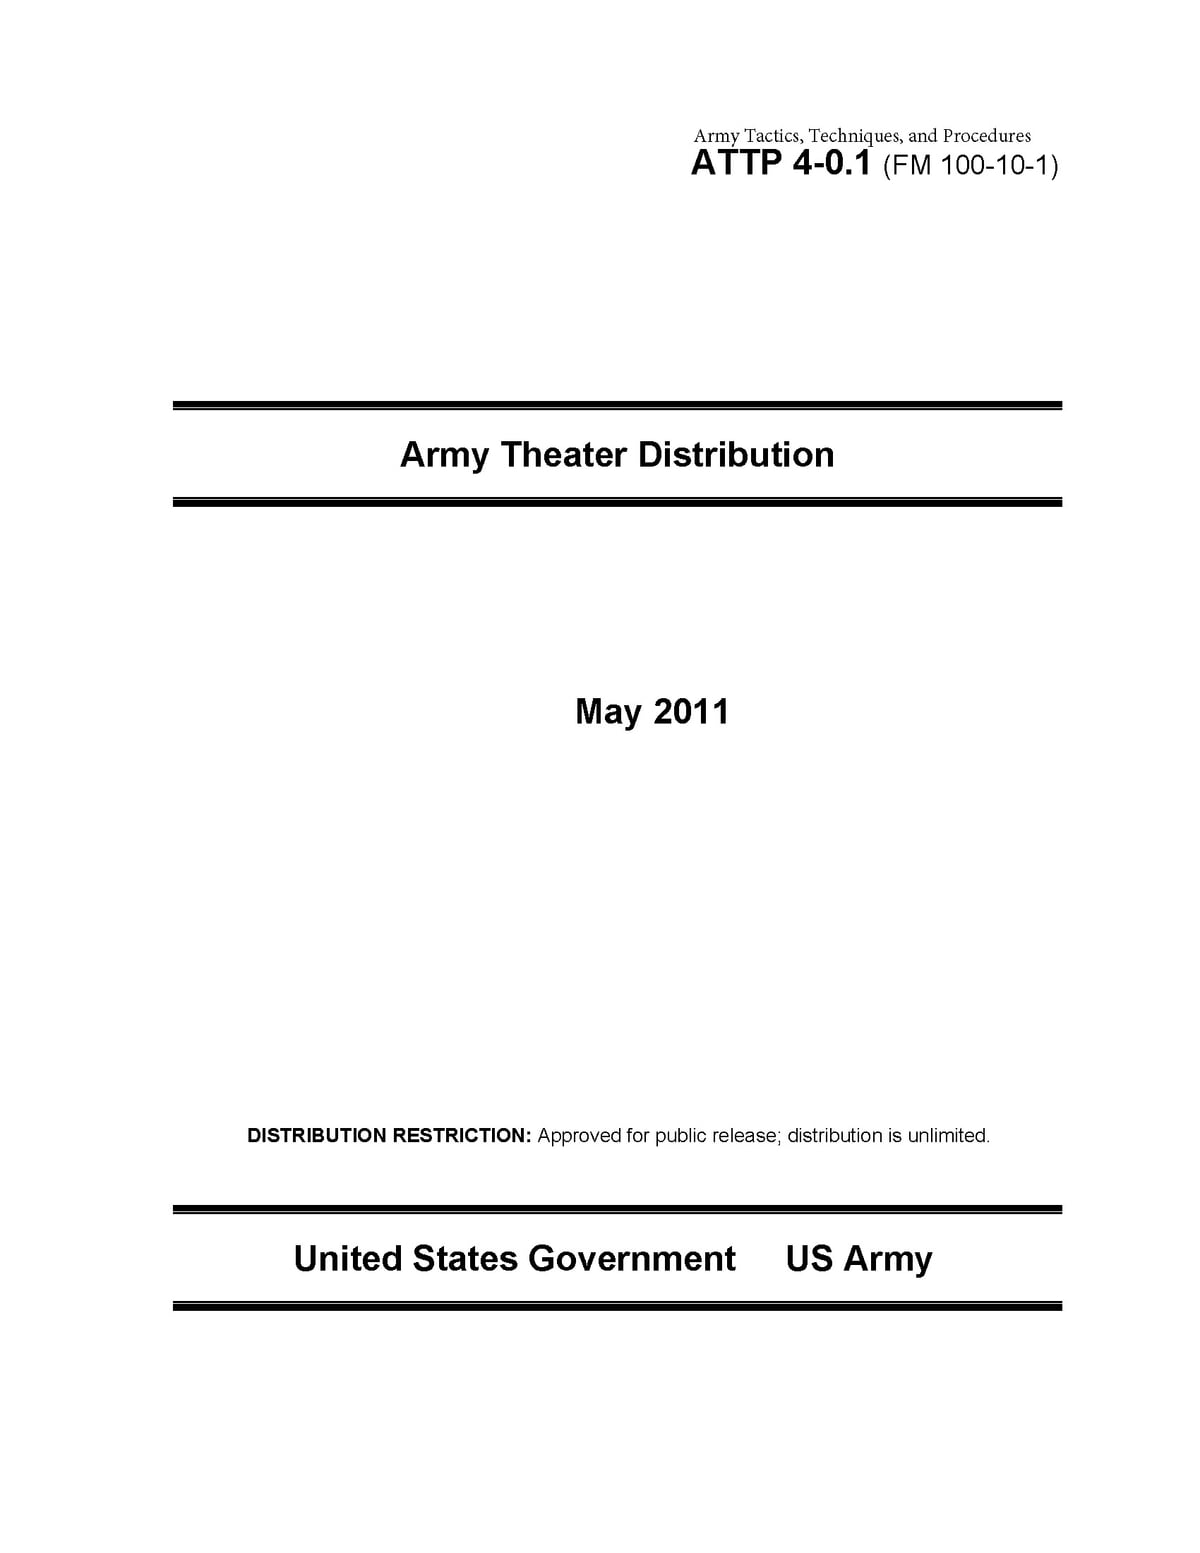 Army Tactics, Techniques, and Procedures ATTP 4-0.1 (FM 100-10-1) Army  Theater Distribution eBook by United States Government US Army -  1230000129543 ...